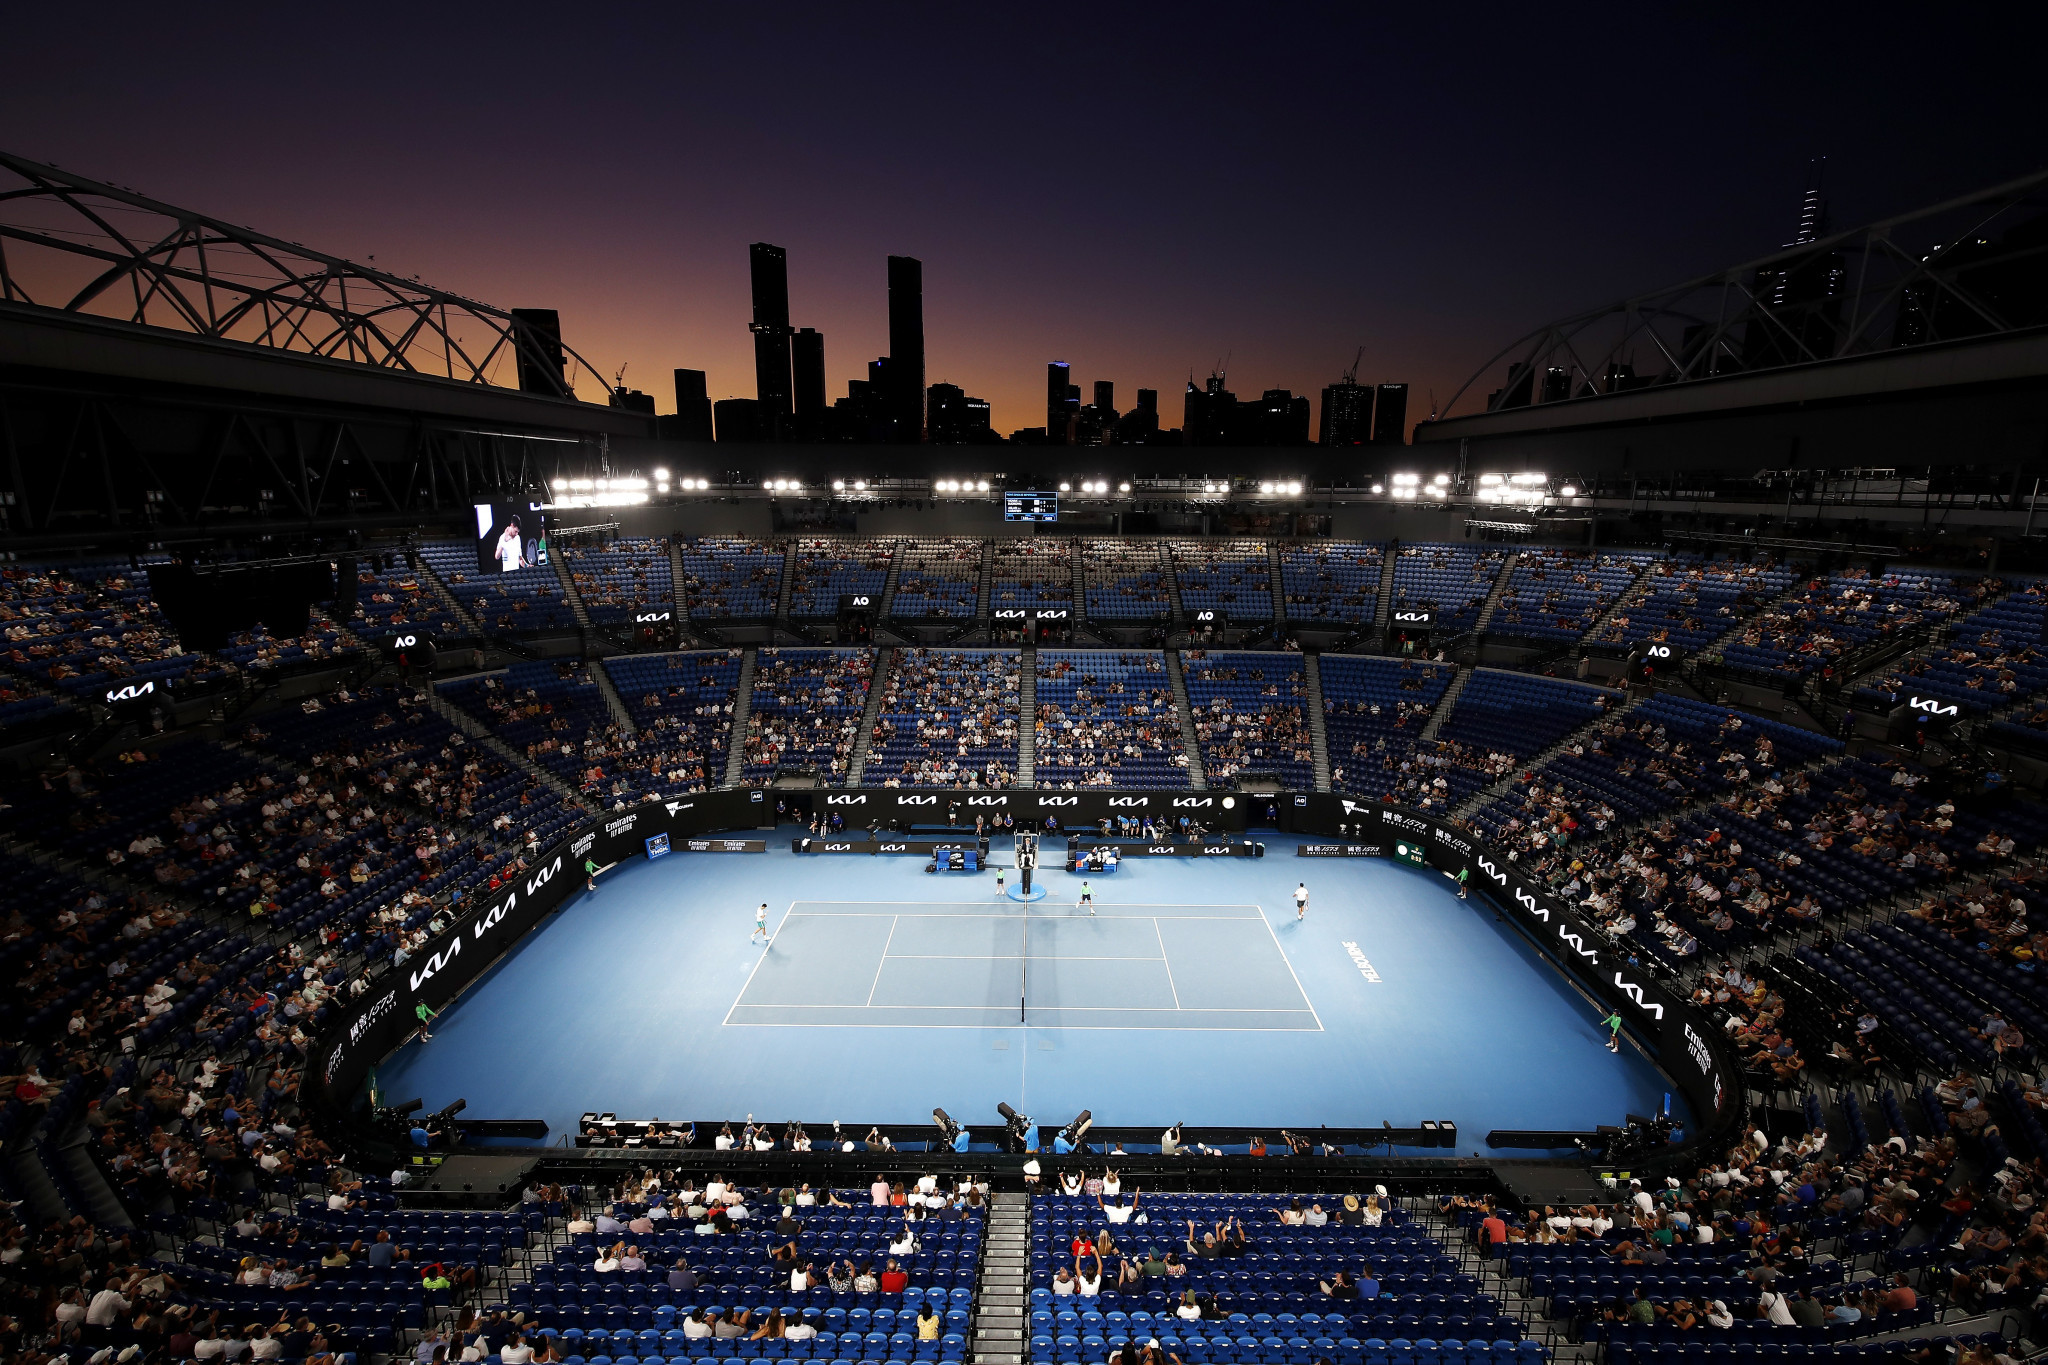 Tennis Australia has yet to reveal whether unvaccinated players will face tougher restrictions at the Australian Open ©Getty Images